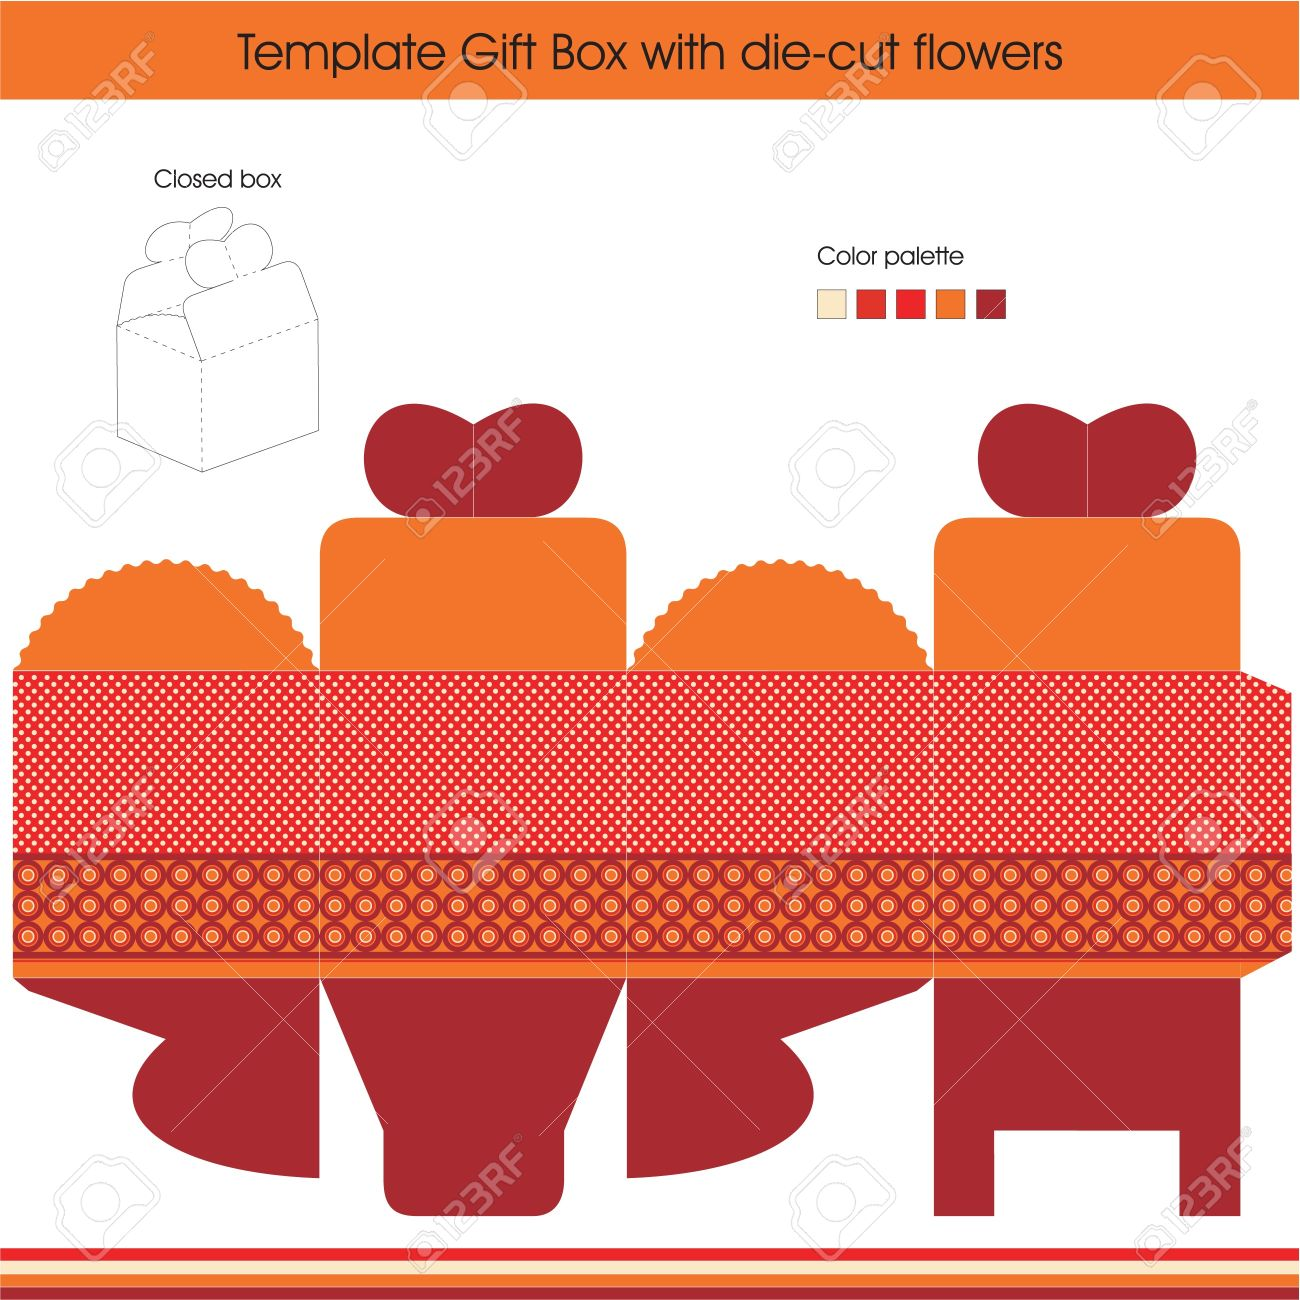 Gift Box Template With Dots Design Royalty Free Cliparts Vectors